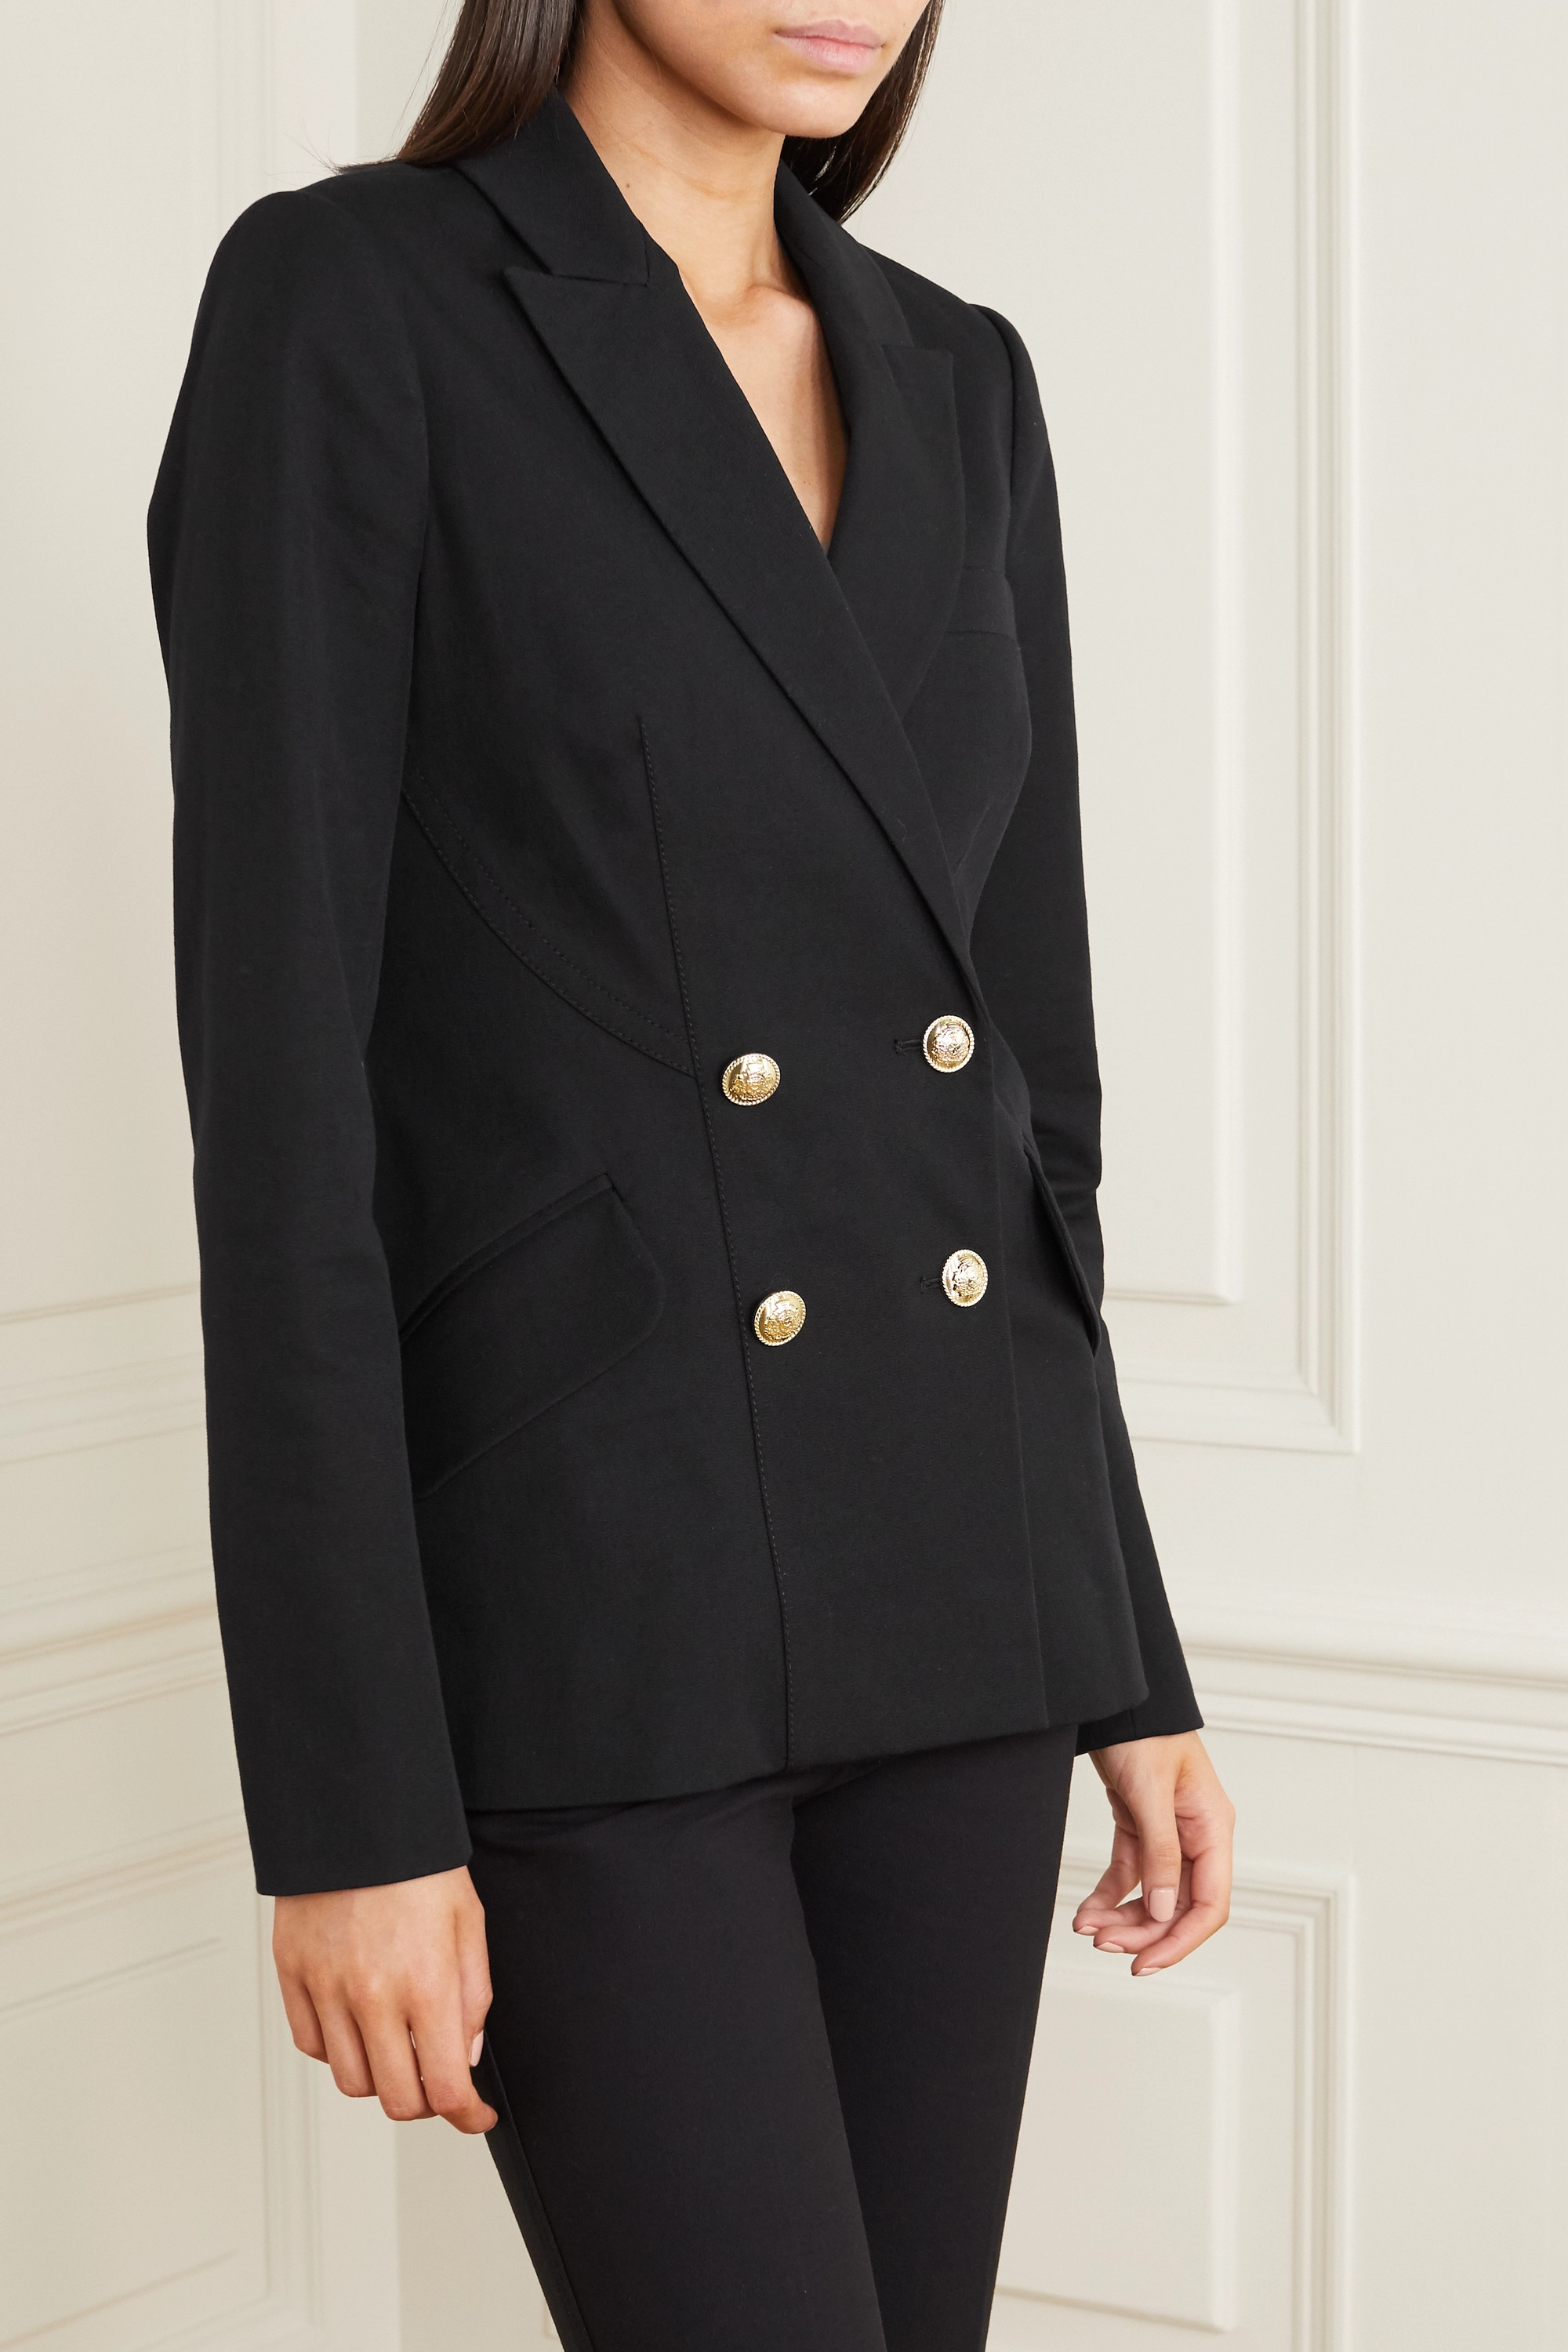 Derek Lam 10 Crosby Rodeo double-breasted stretch-cotton twill blazer